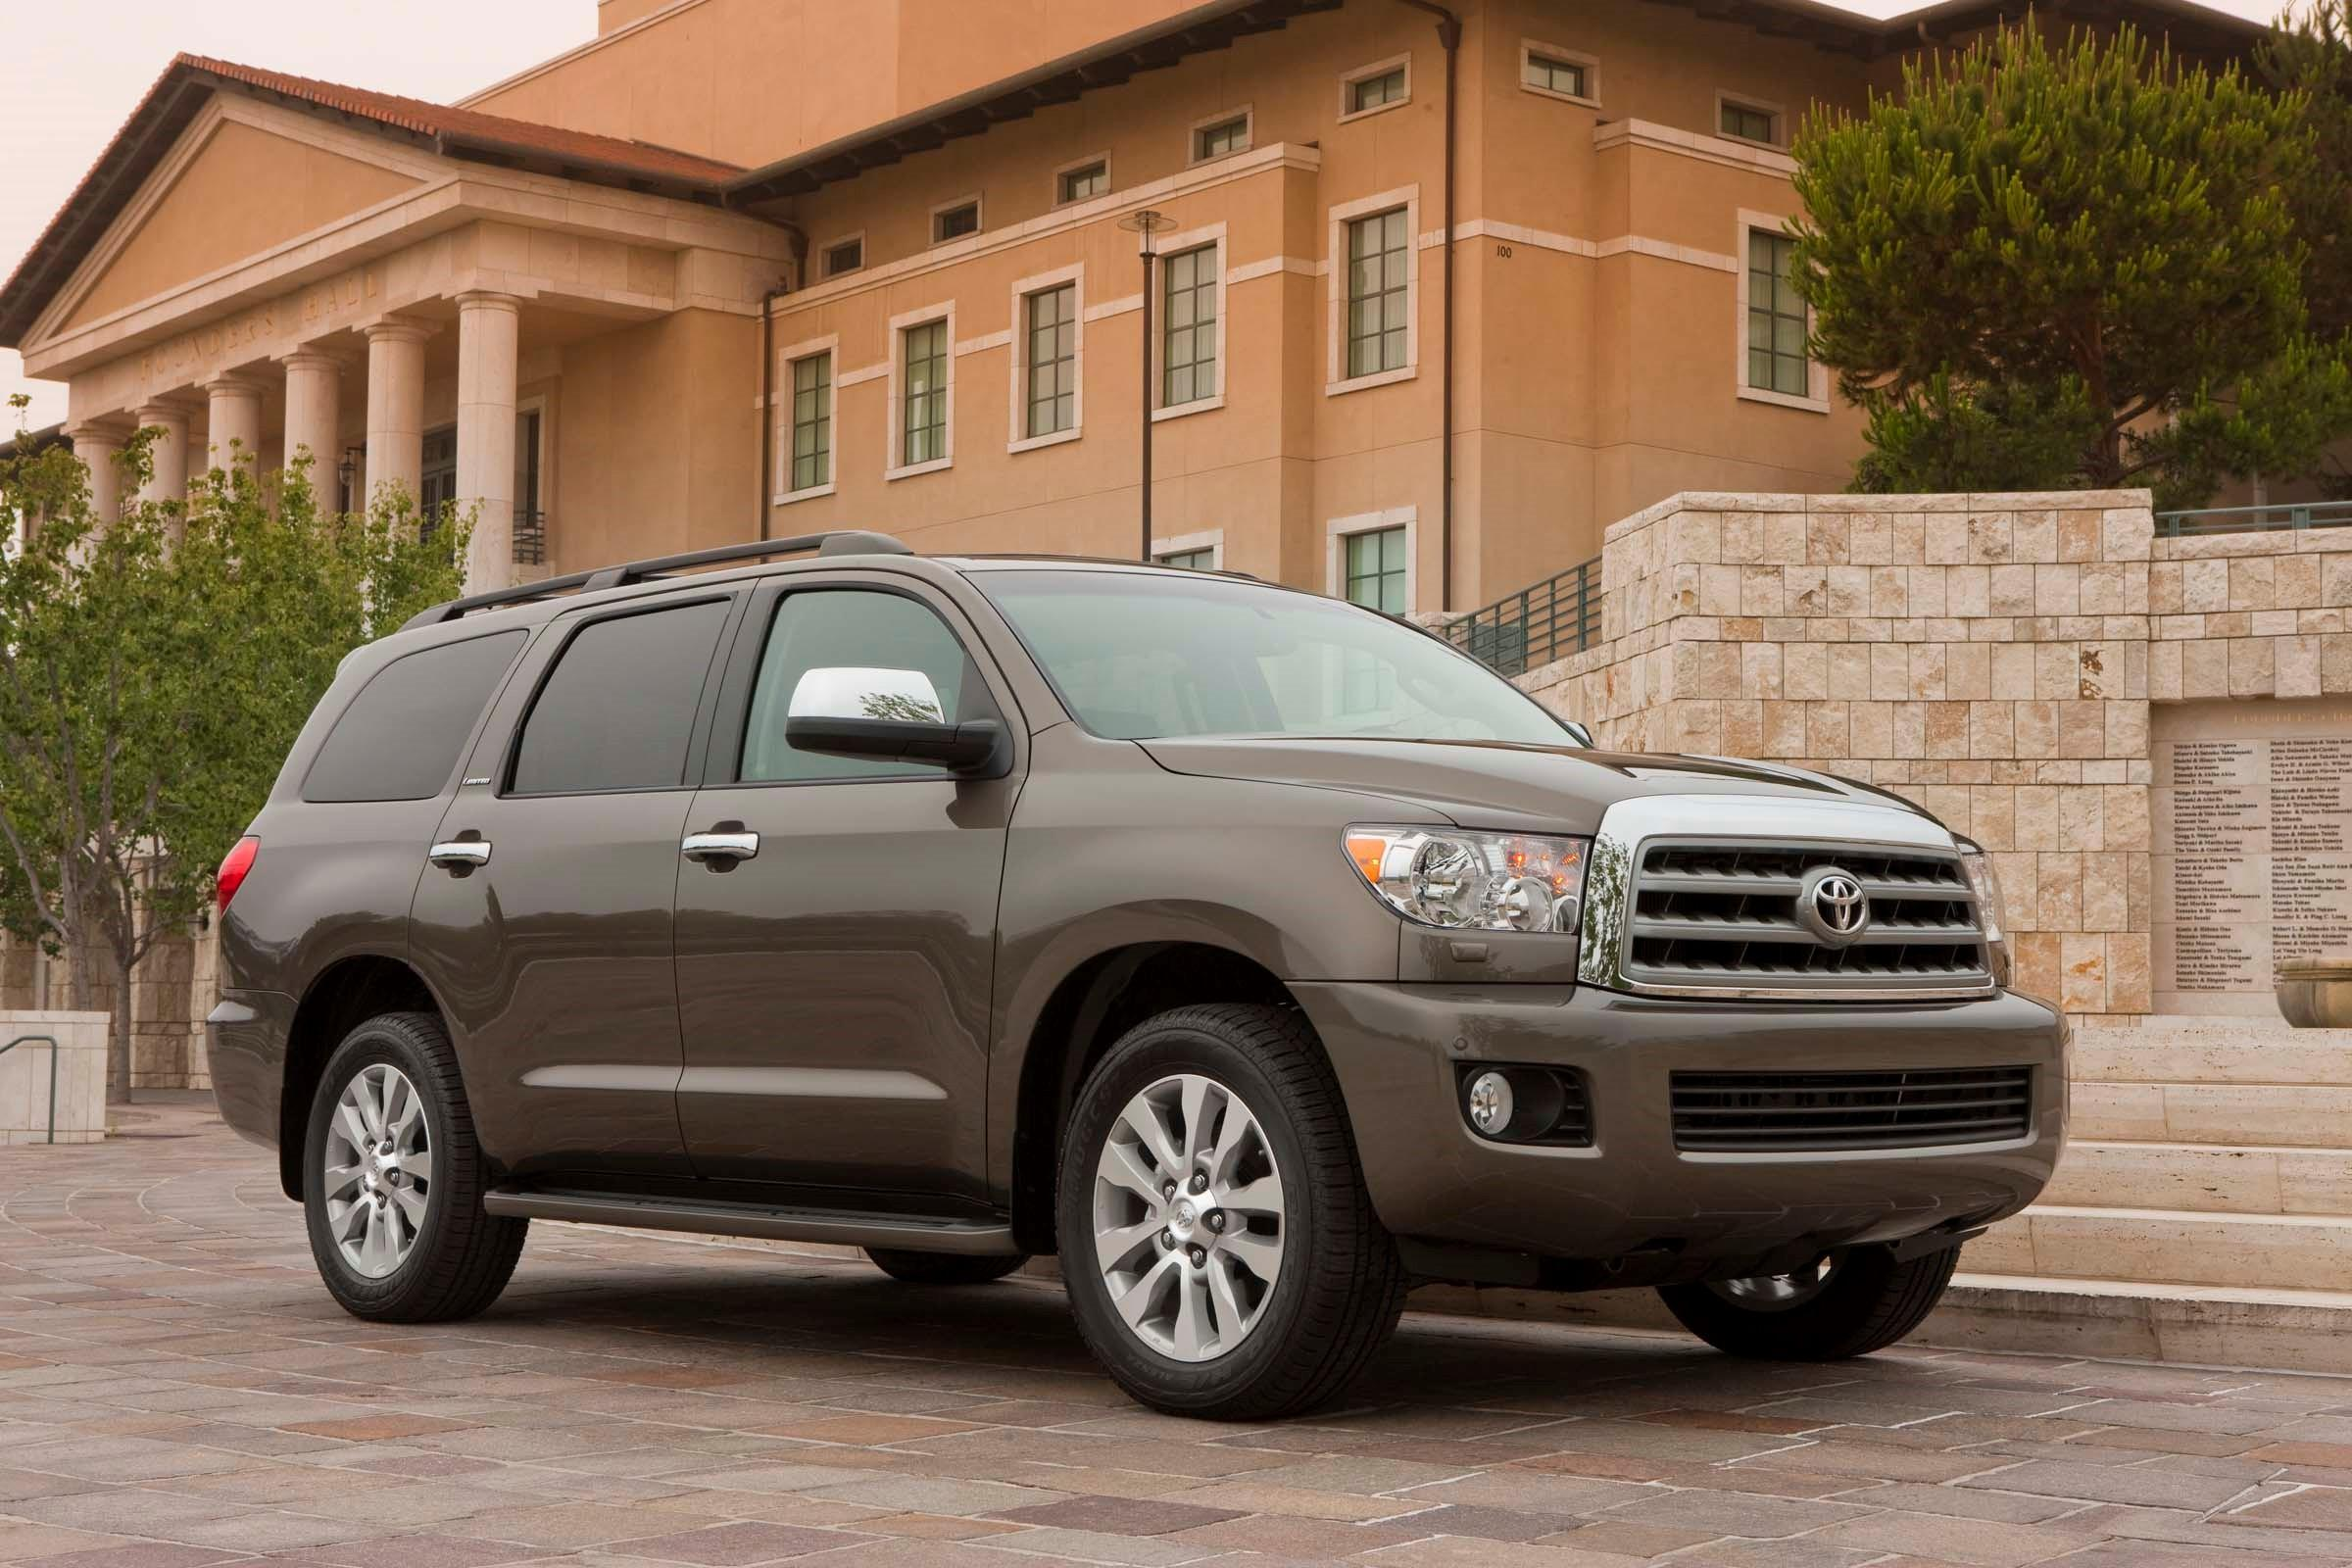 2017 Toyota Sequoia Spacious Full Size SUV Is Luxurious And Capable